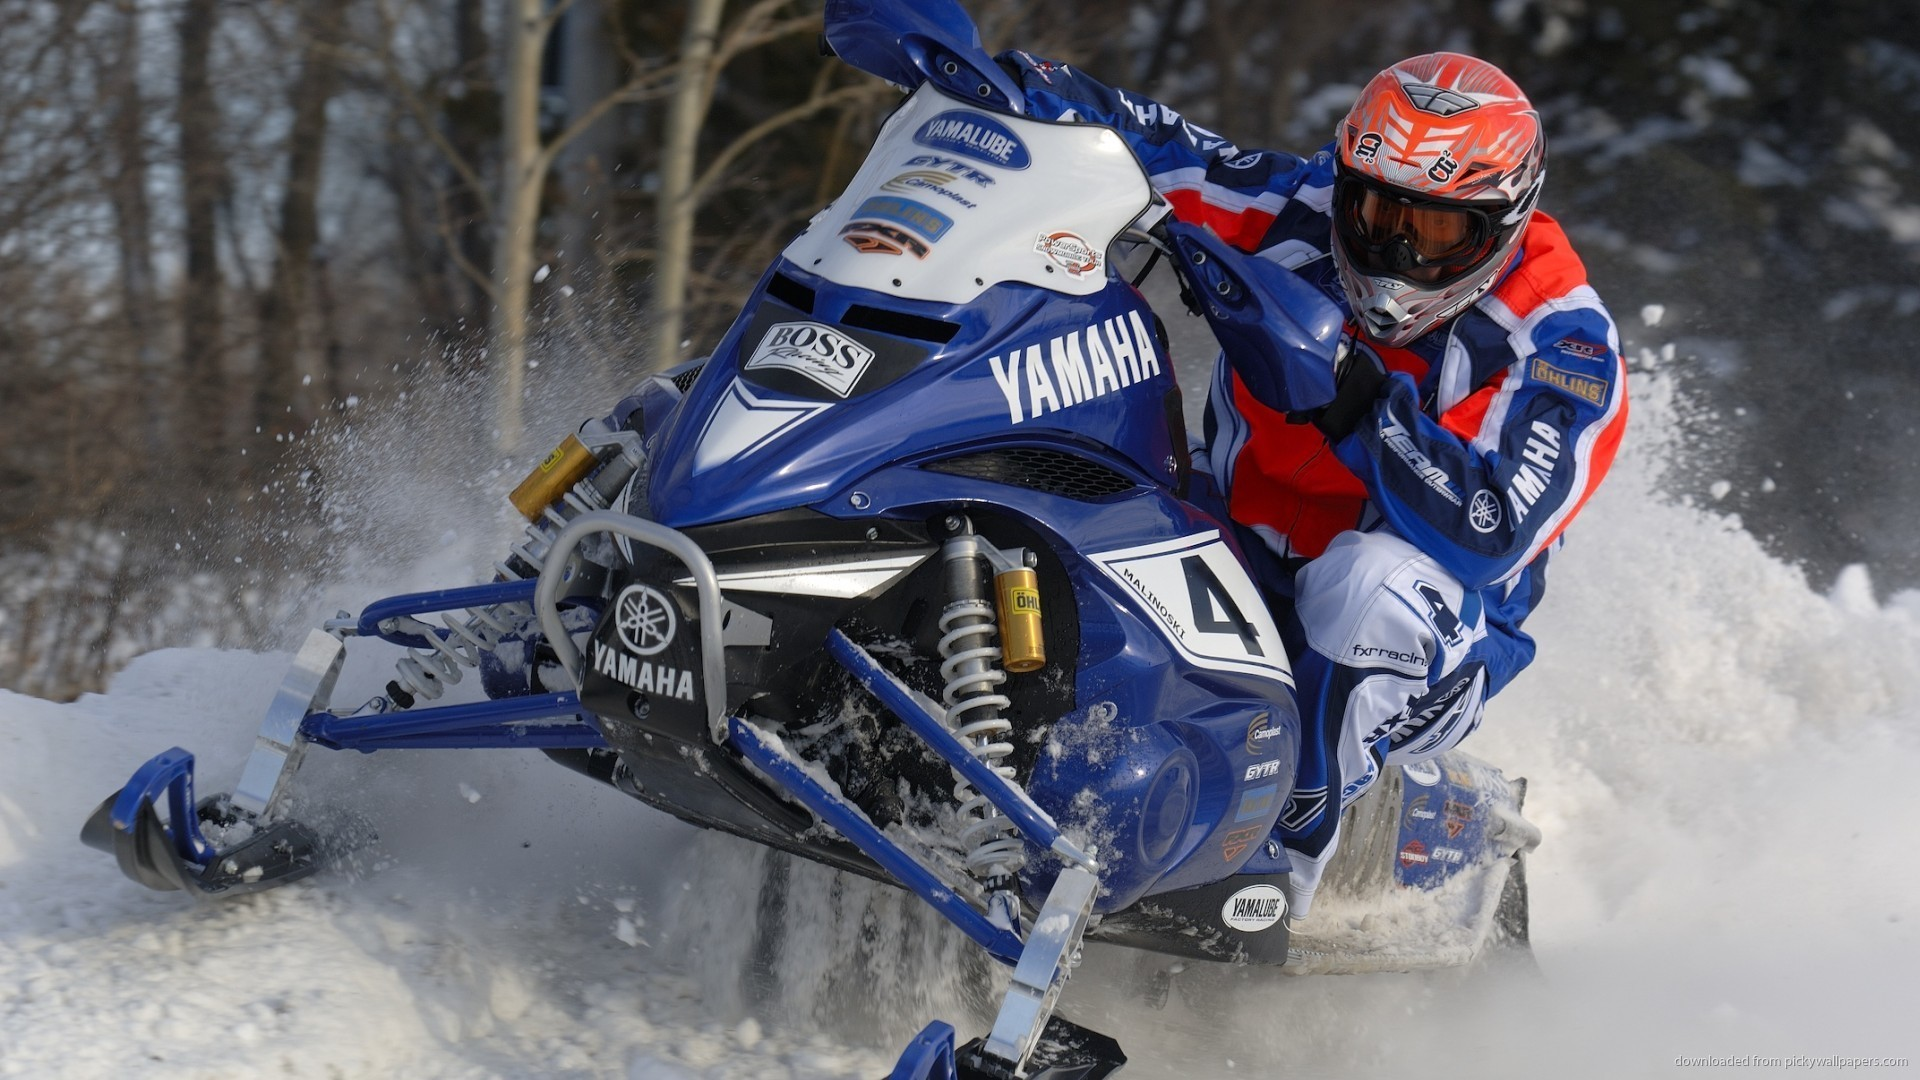 Yamaha Snowmobile Wallpaper picture